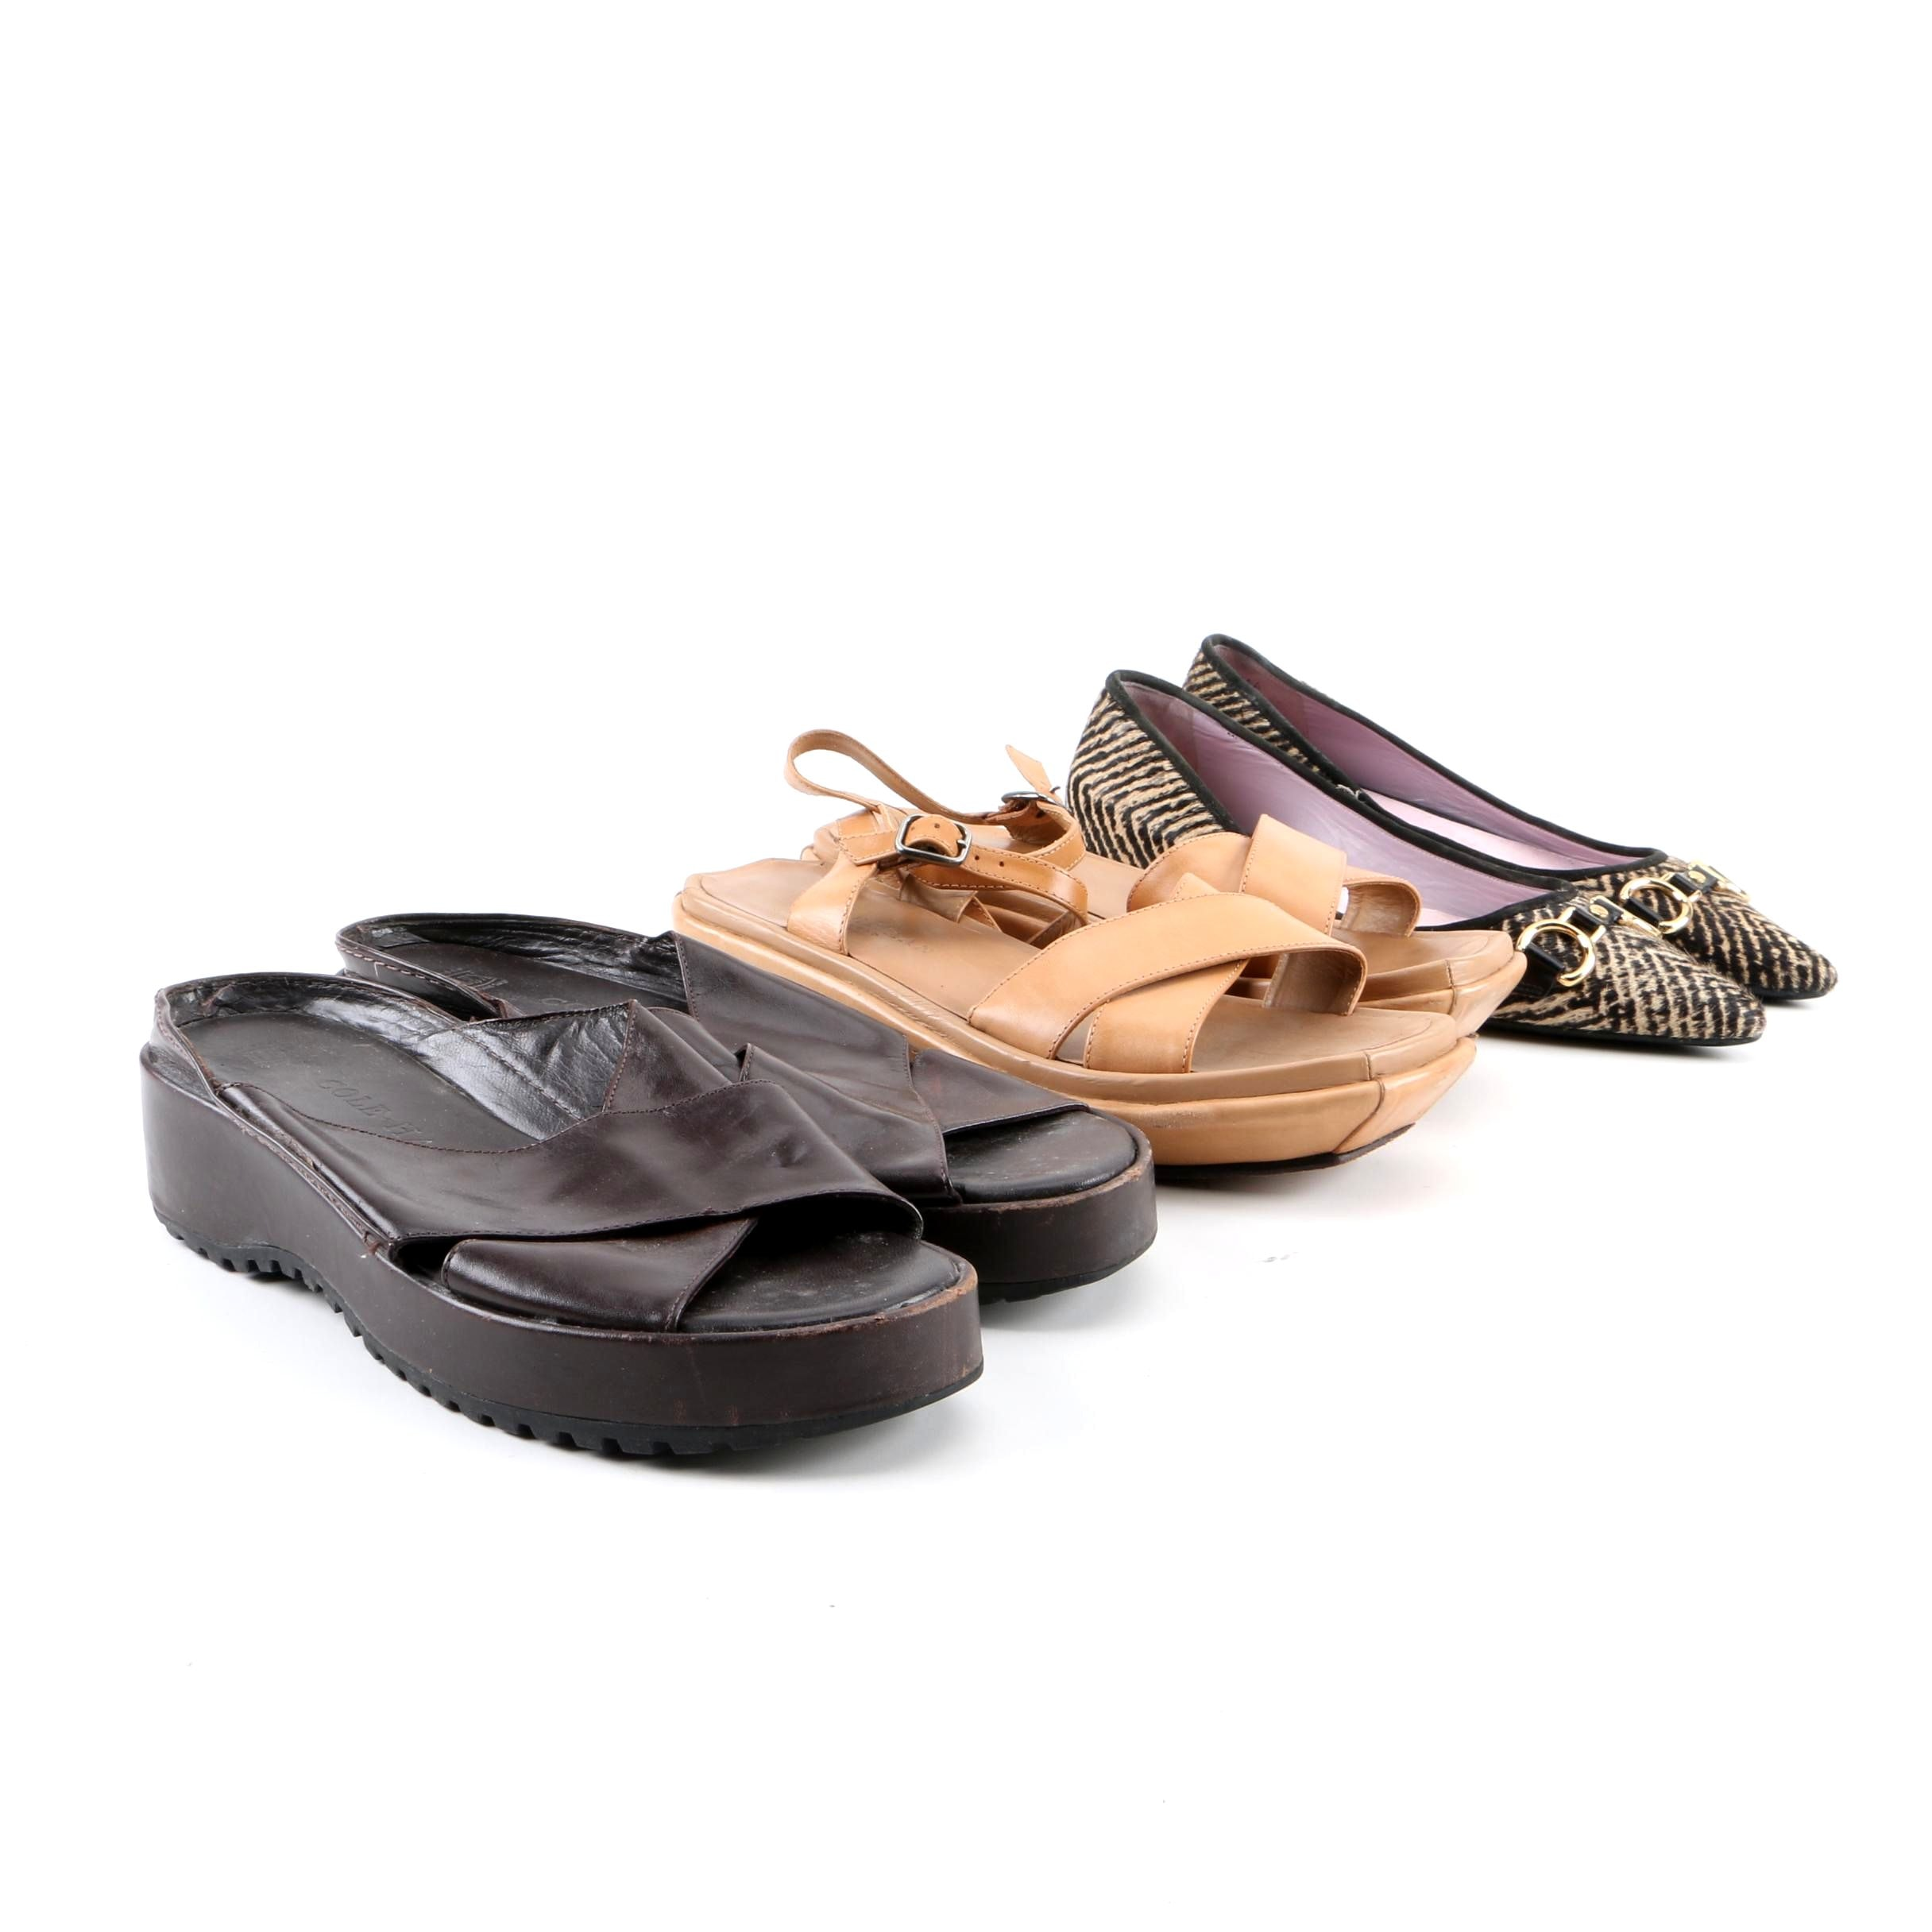 Women's Cole Haan Calf Hair Flats and Leather Sandals